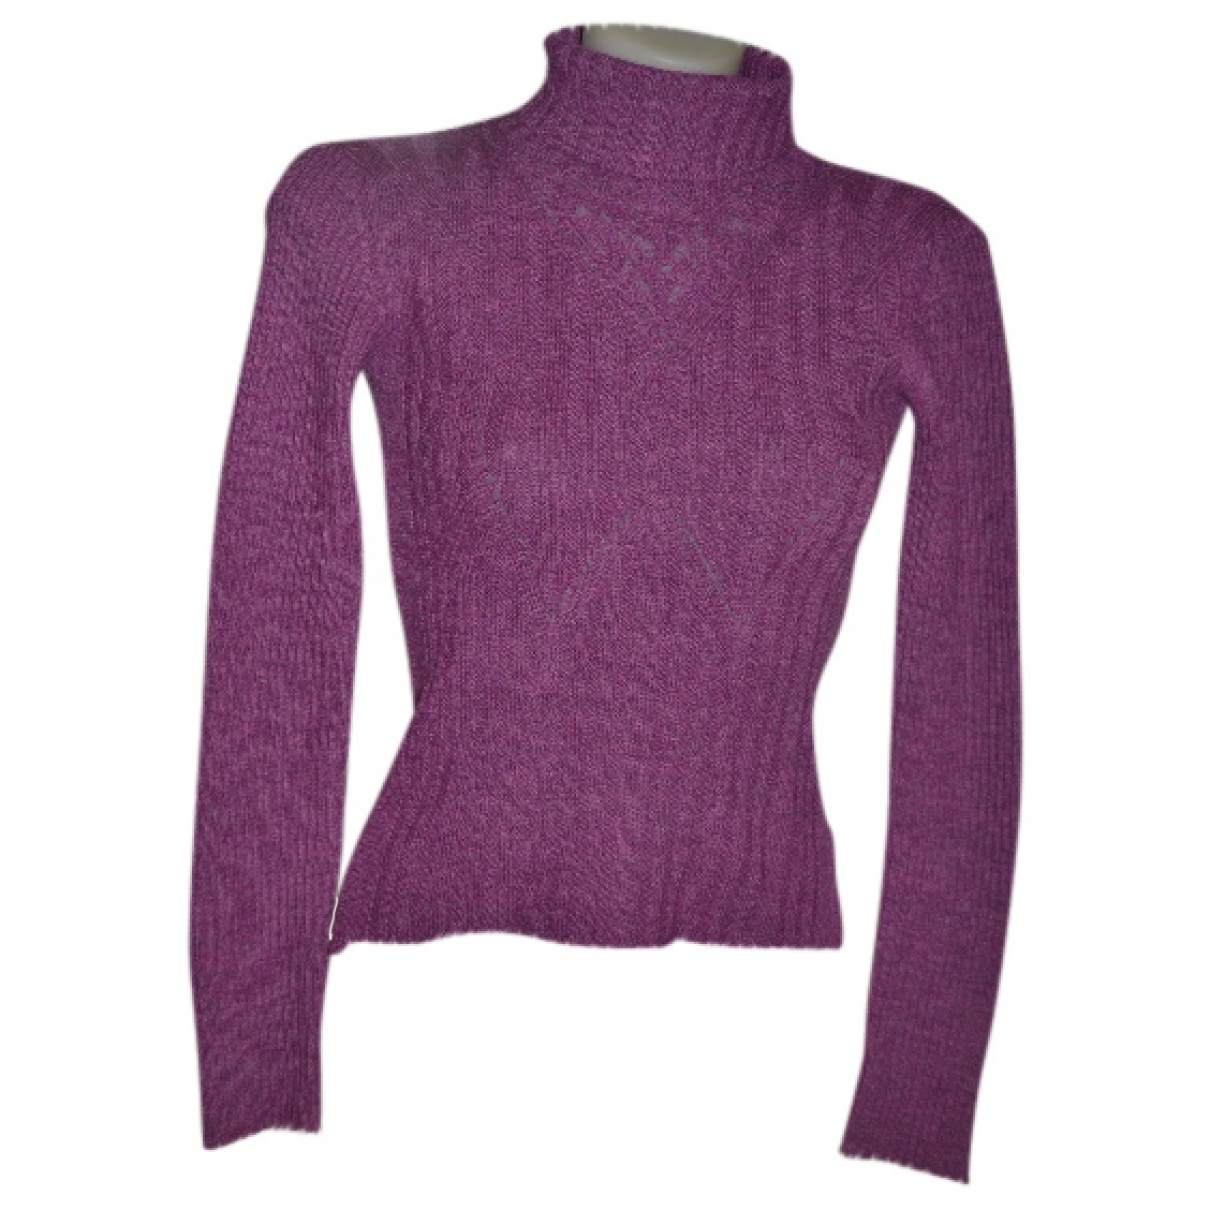 D&g \N Pullover in  Lila Wolle